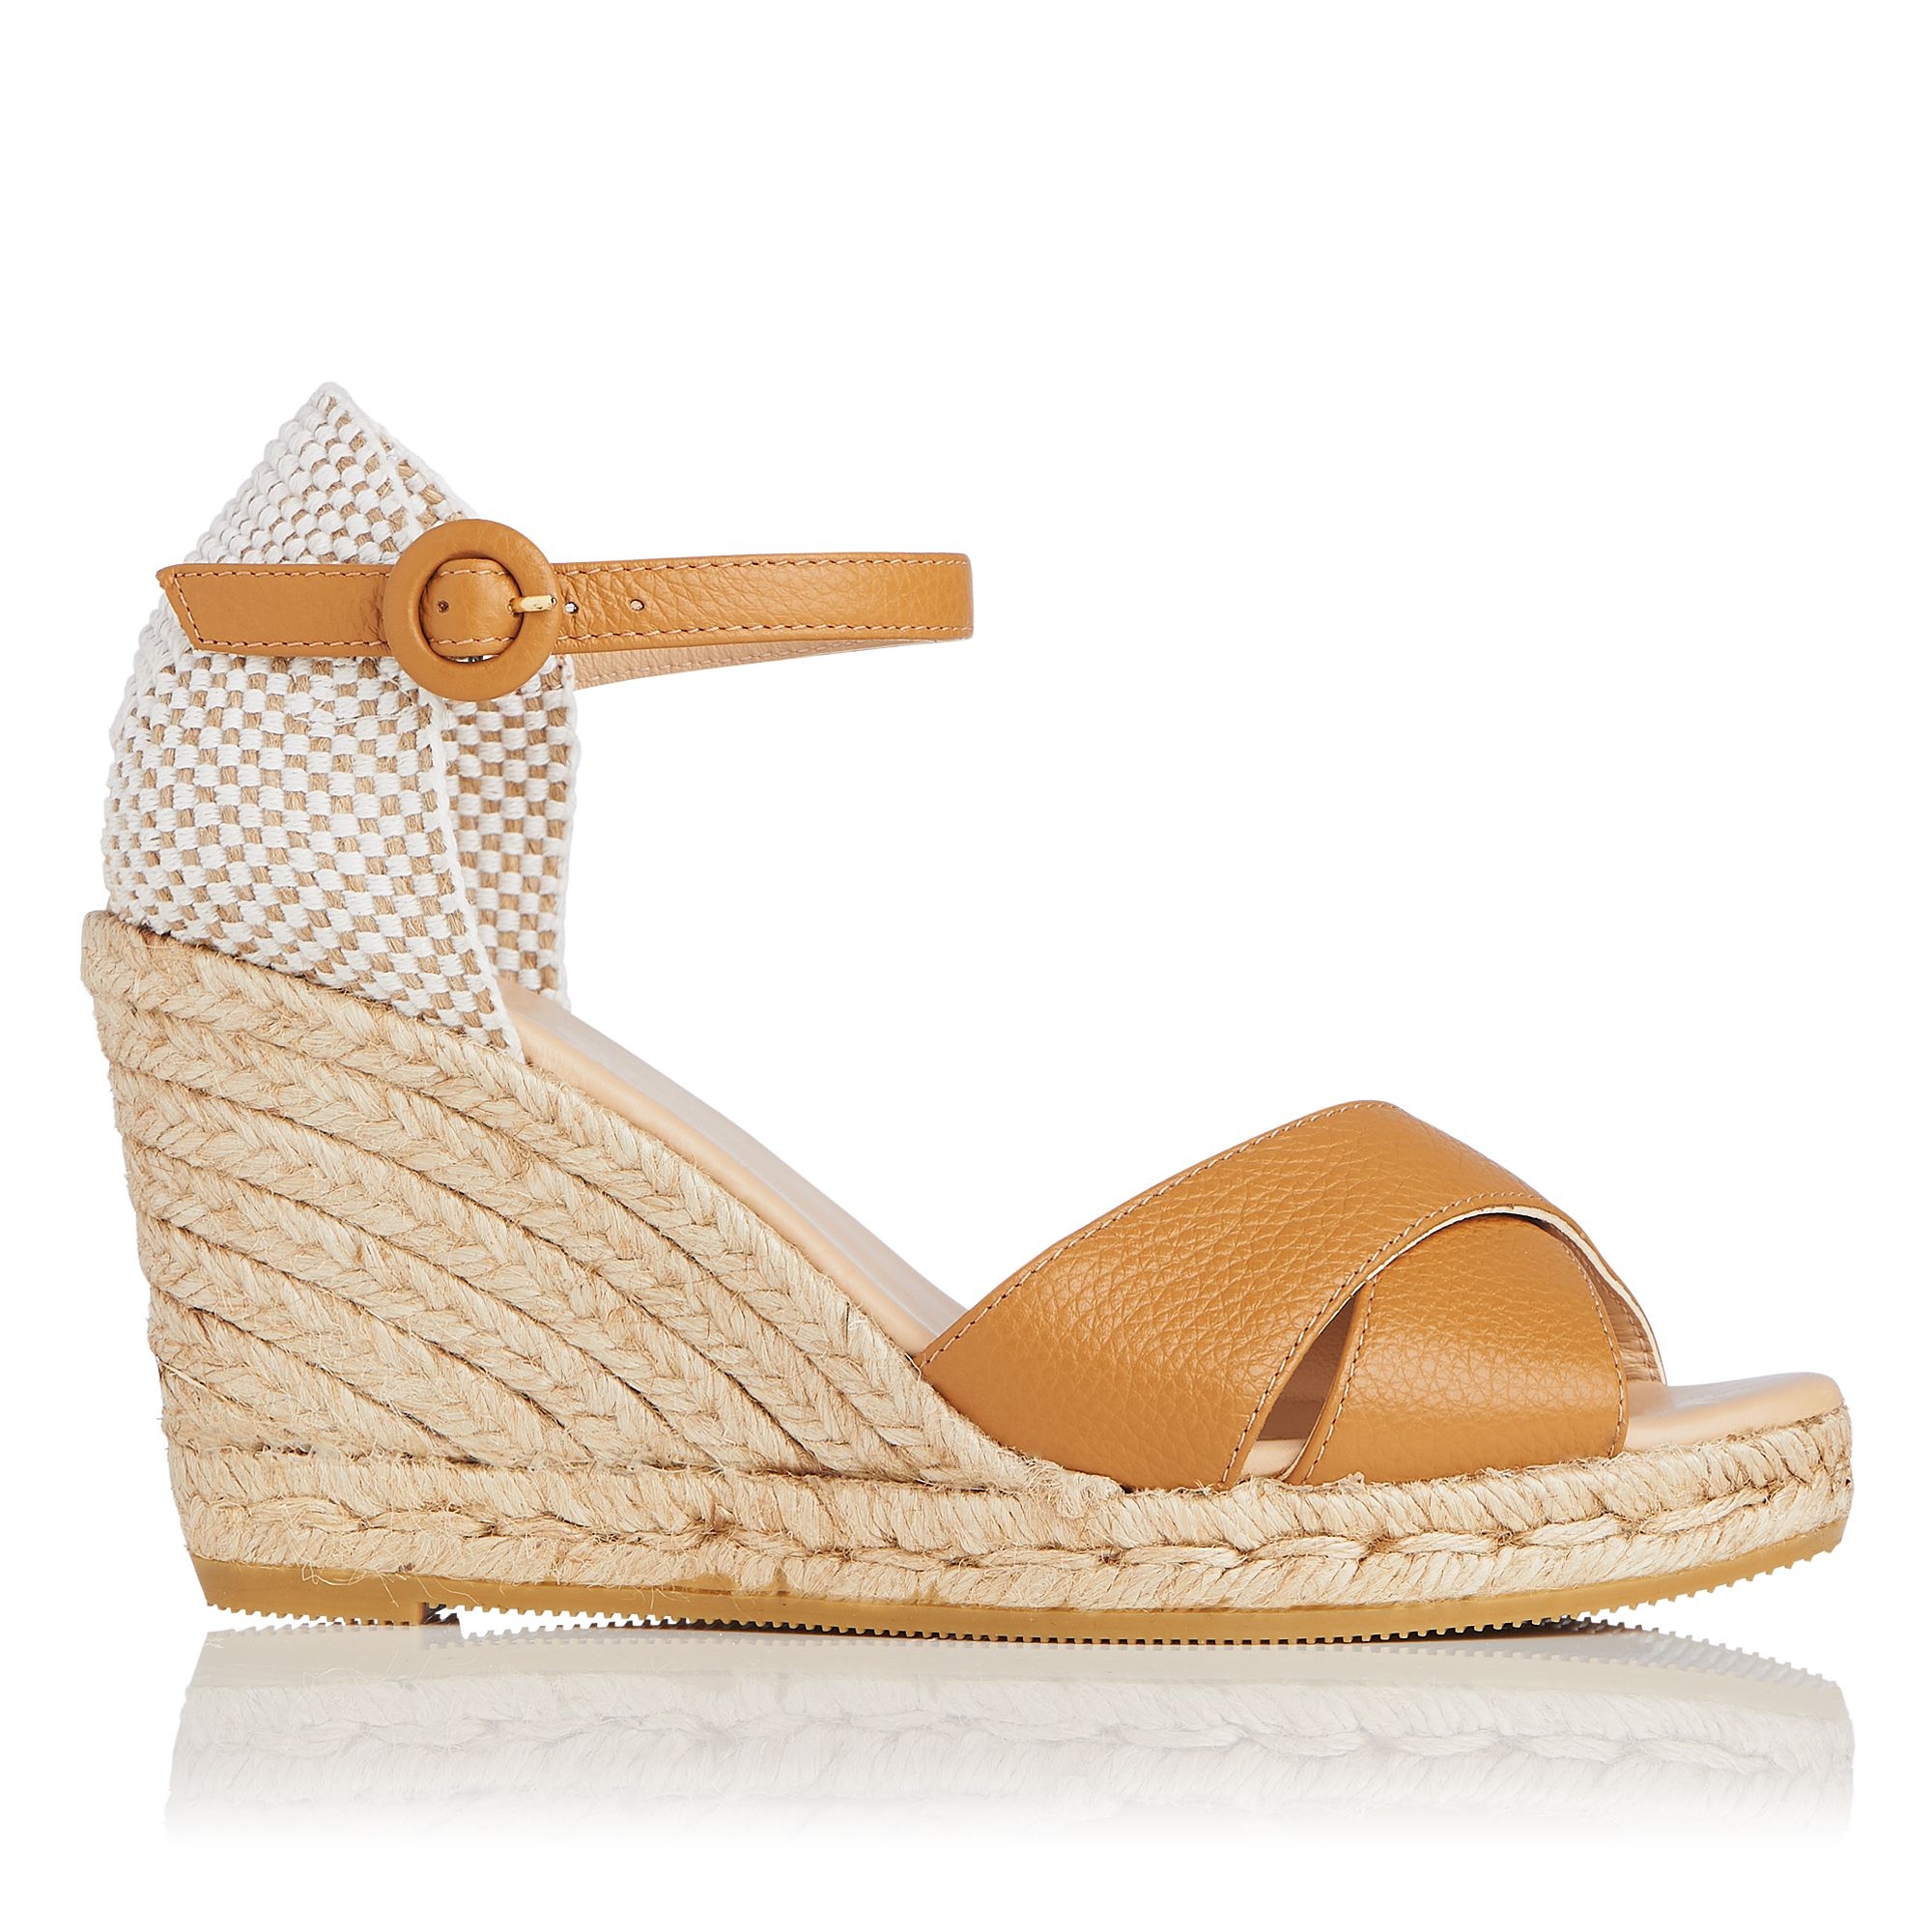 L.K.Bennett Angele Casual Sandals, Tan